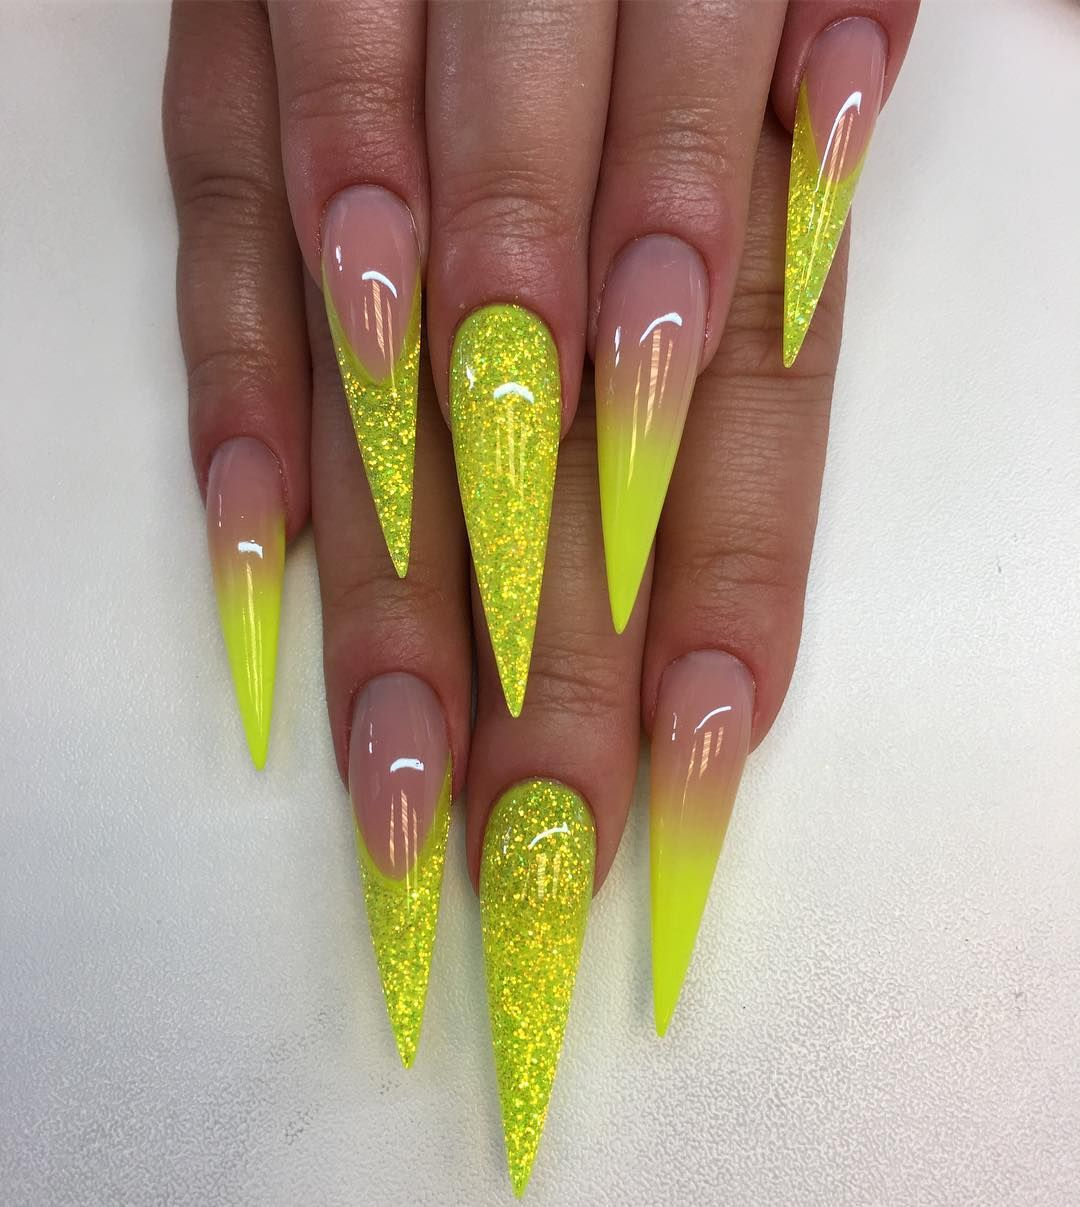 Pin by Caitlin Aschliman on Nail\'d It! | Pinterest | Neon yellow ...